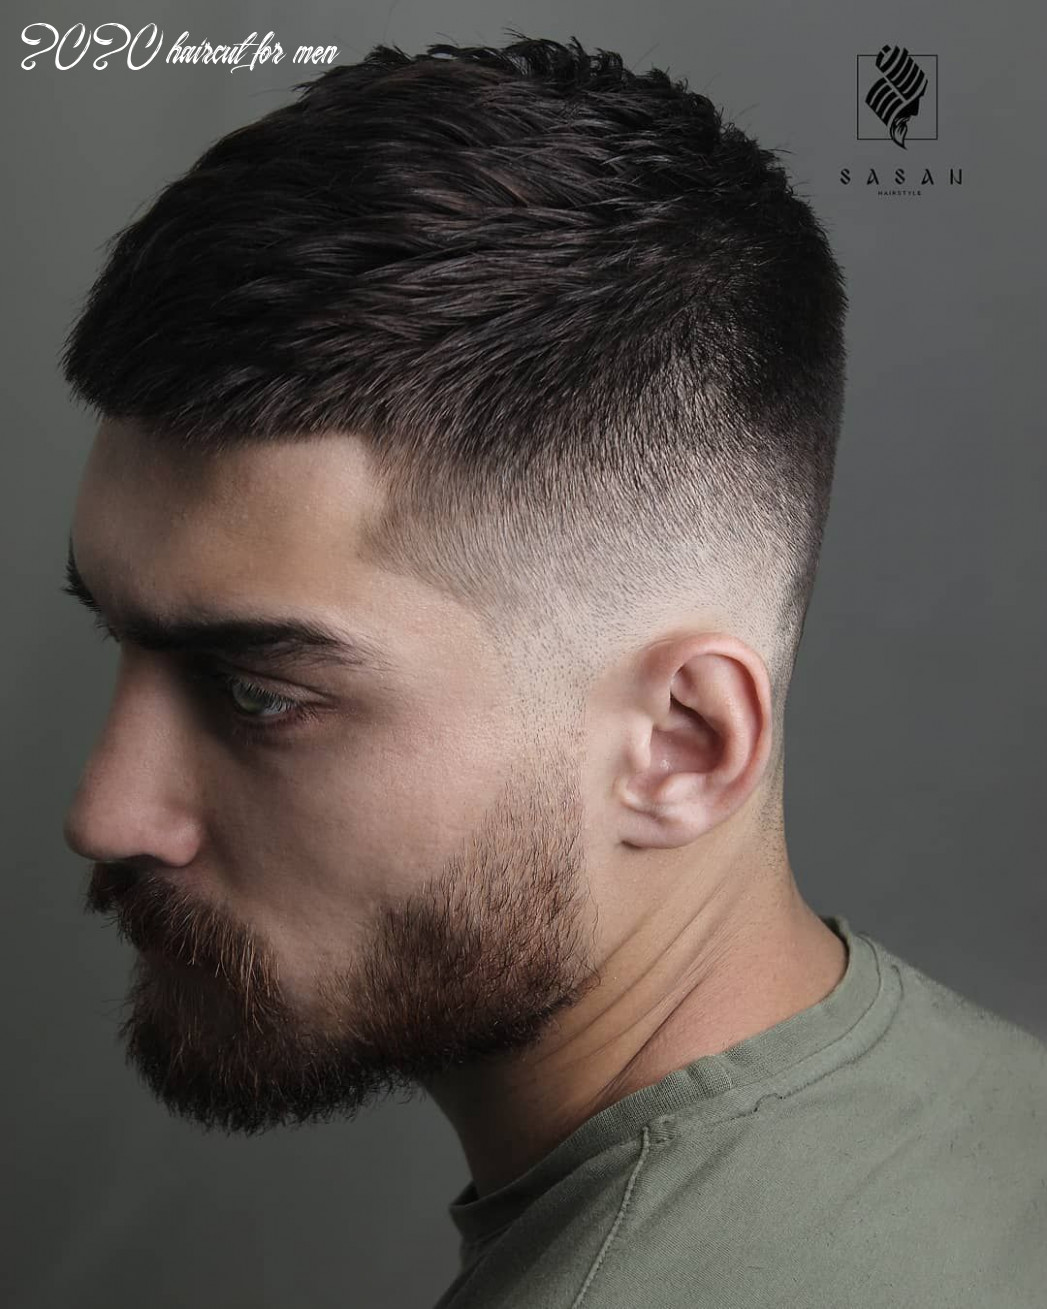 10 cool haircuts for men (1010 styles) | young men haircuts, mens